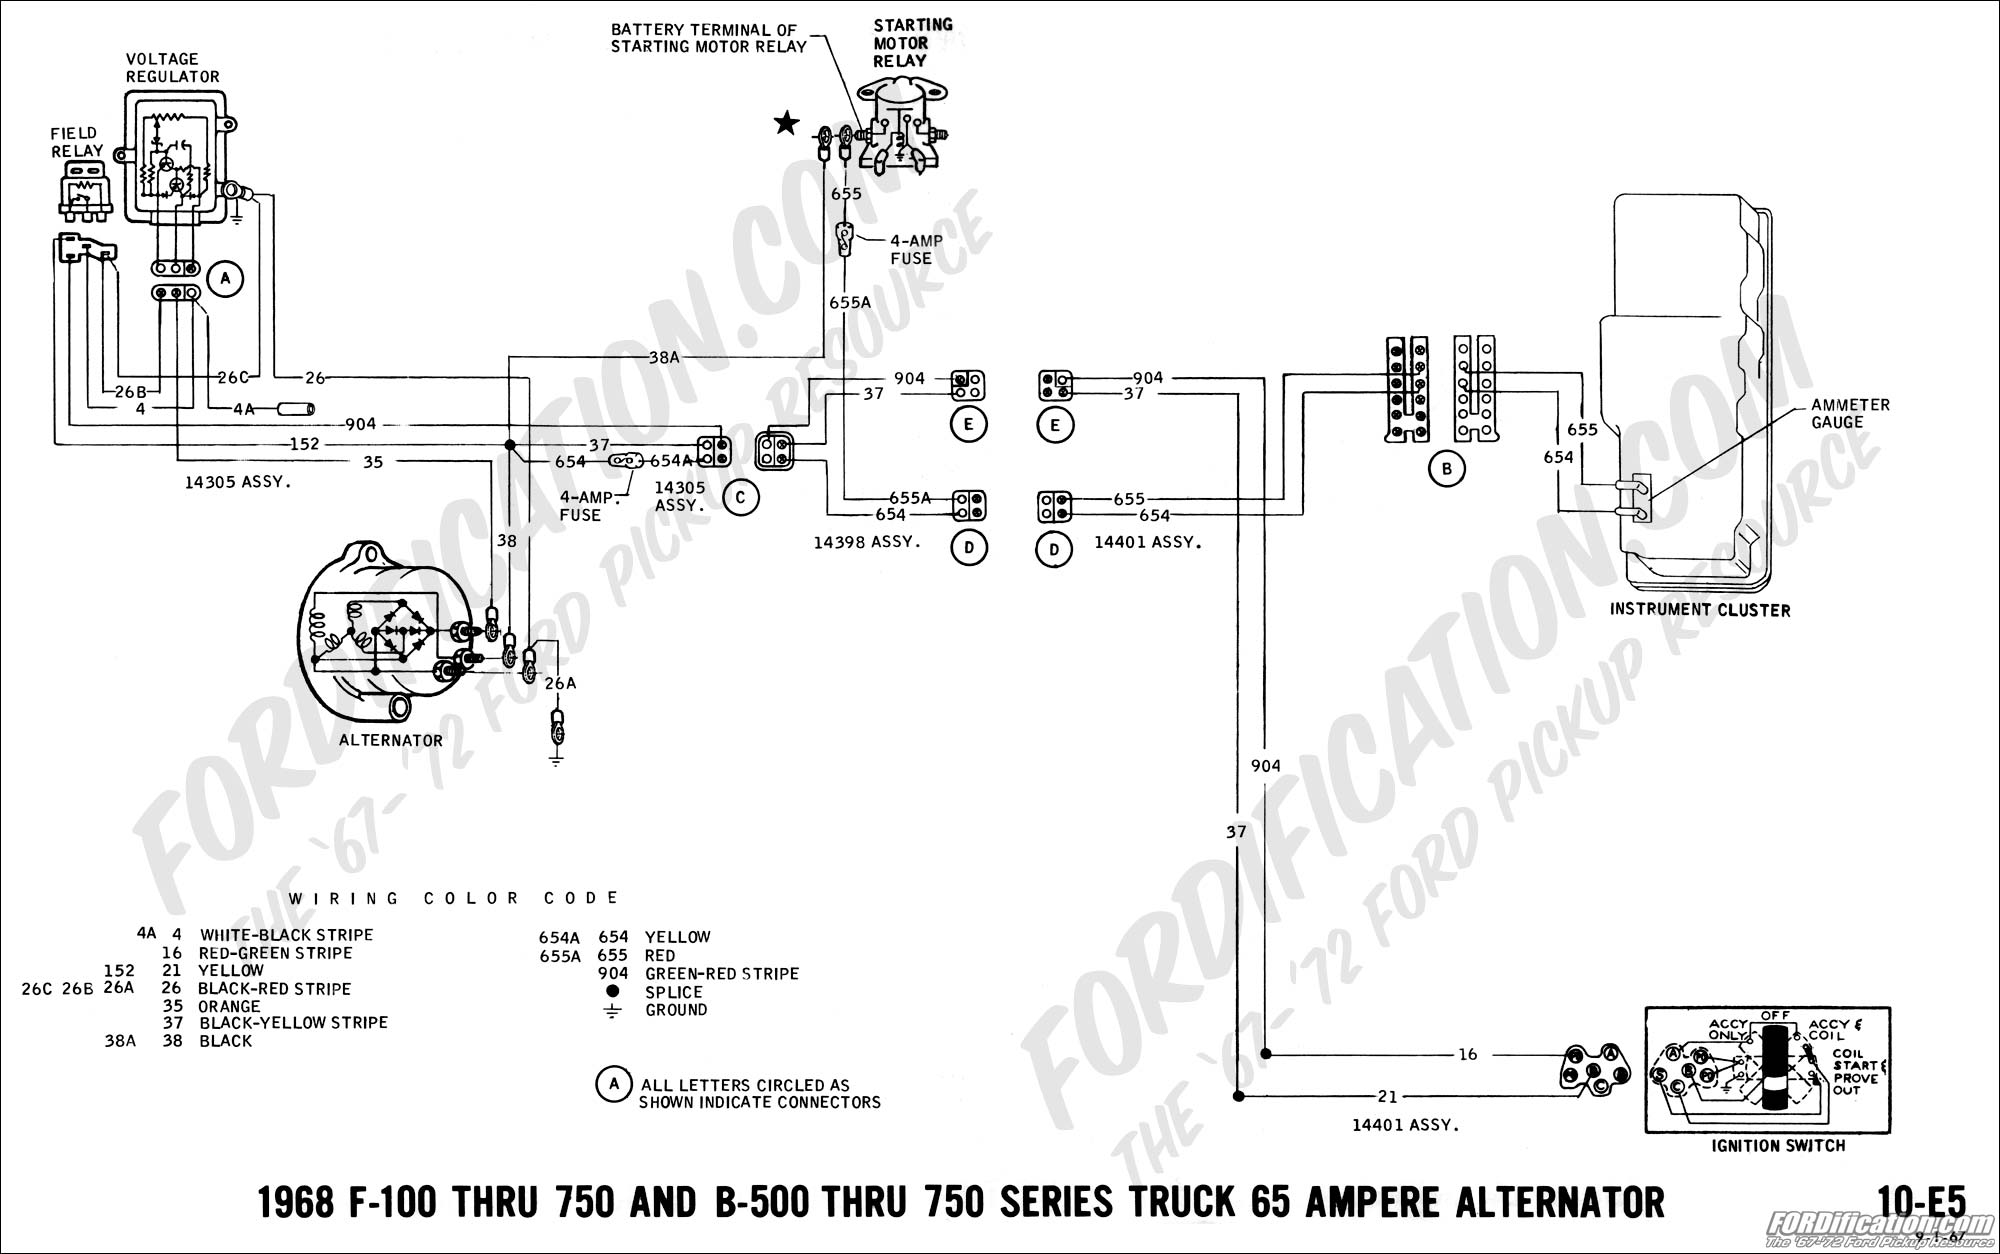 68 07 ford truck technical drawings and schematics section h wiring Universal Wiper Motor Wiring Diagram at fashall.co